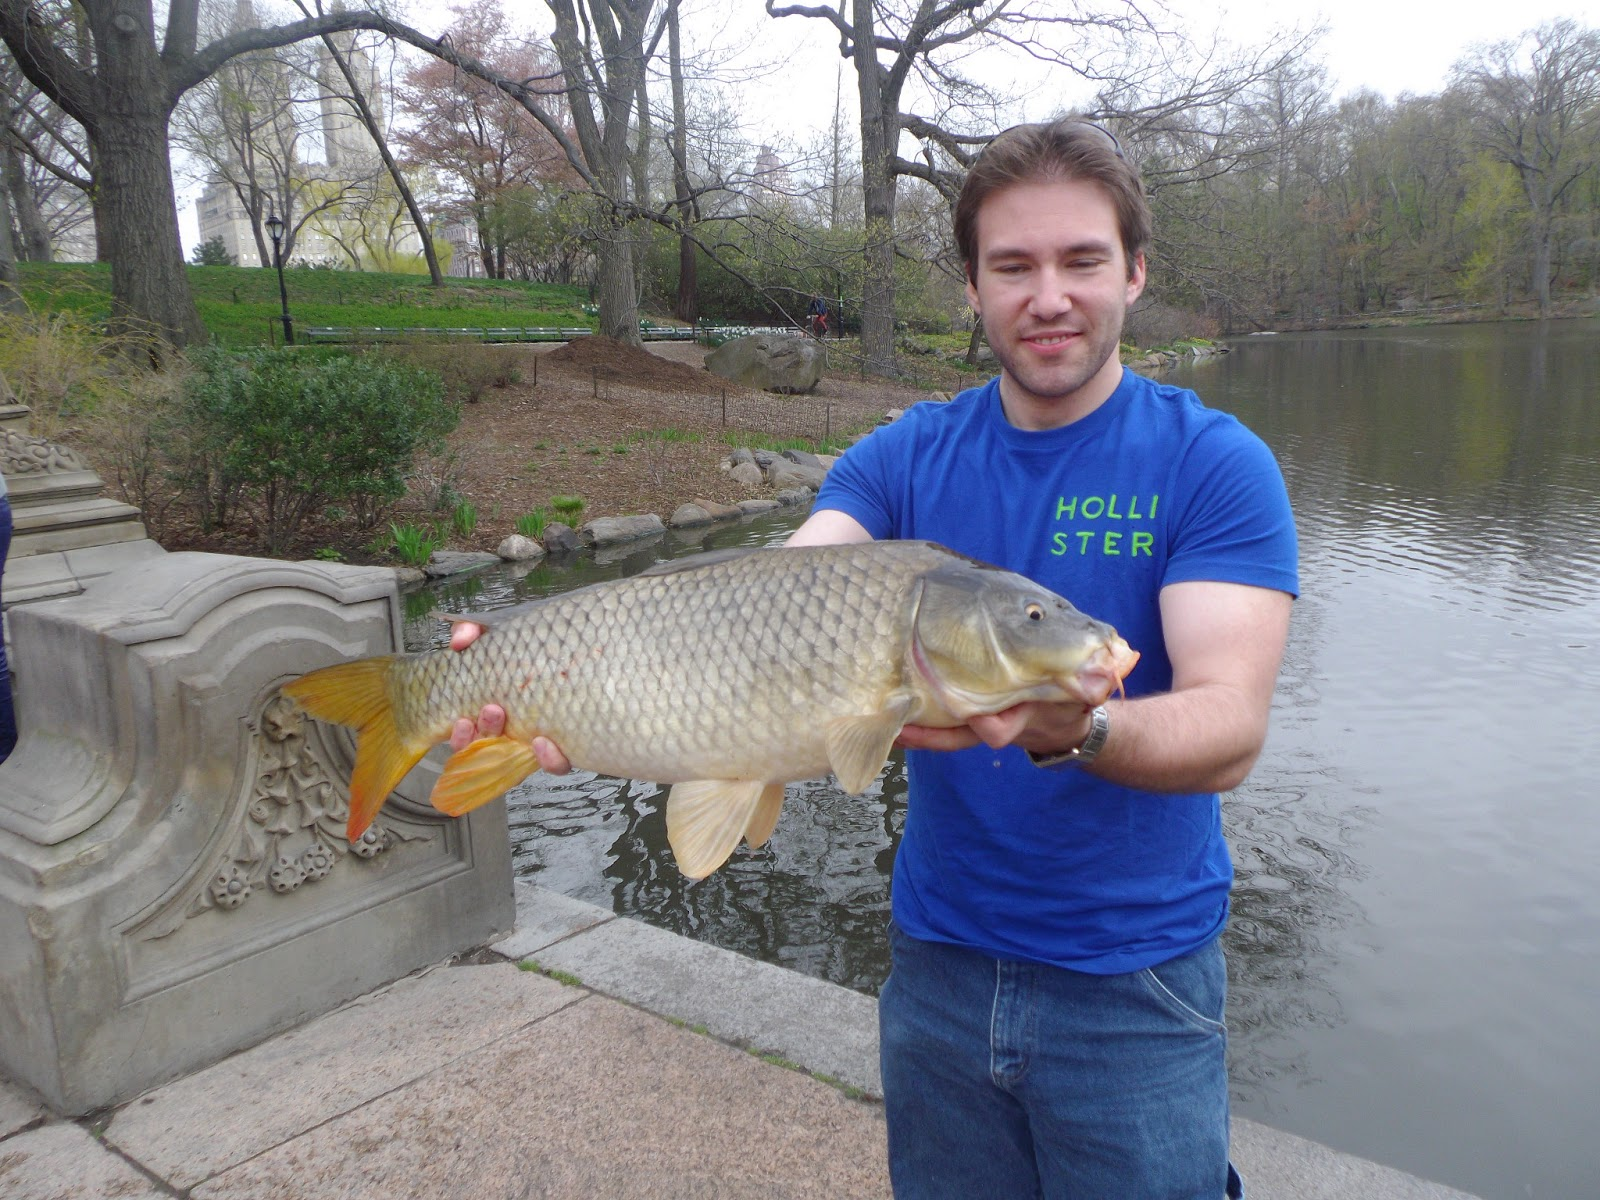 Fly fishing for carp in central park the great lakes of nyc for Fly fishing carp